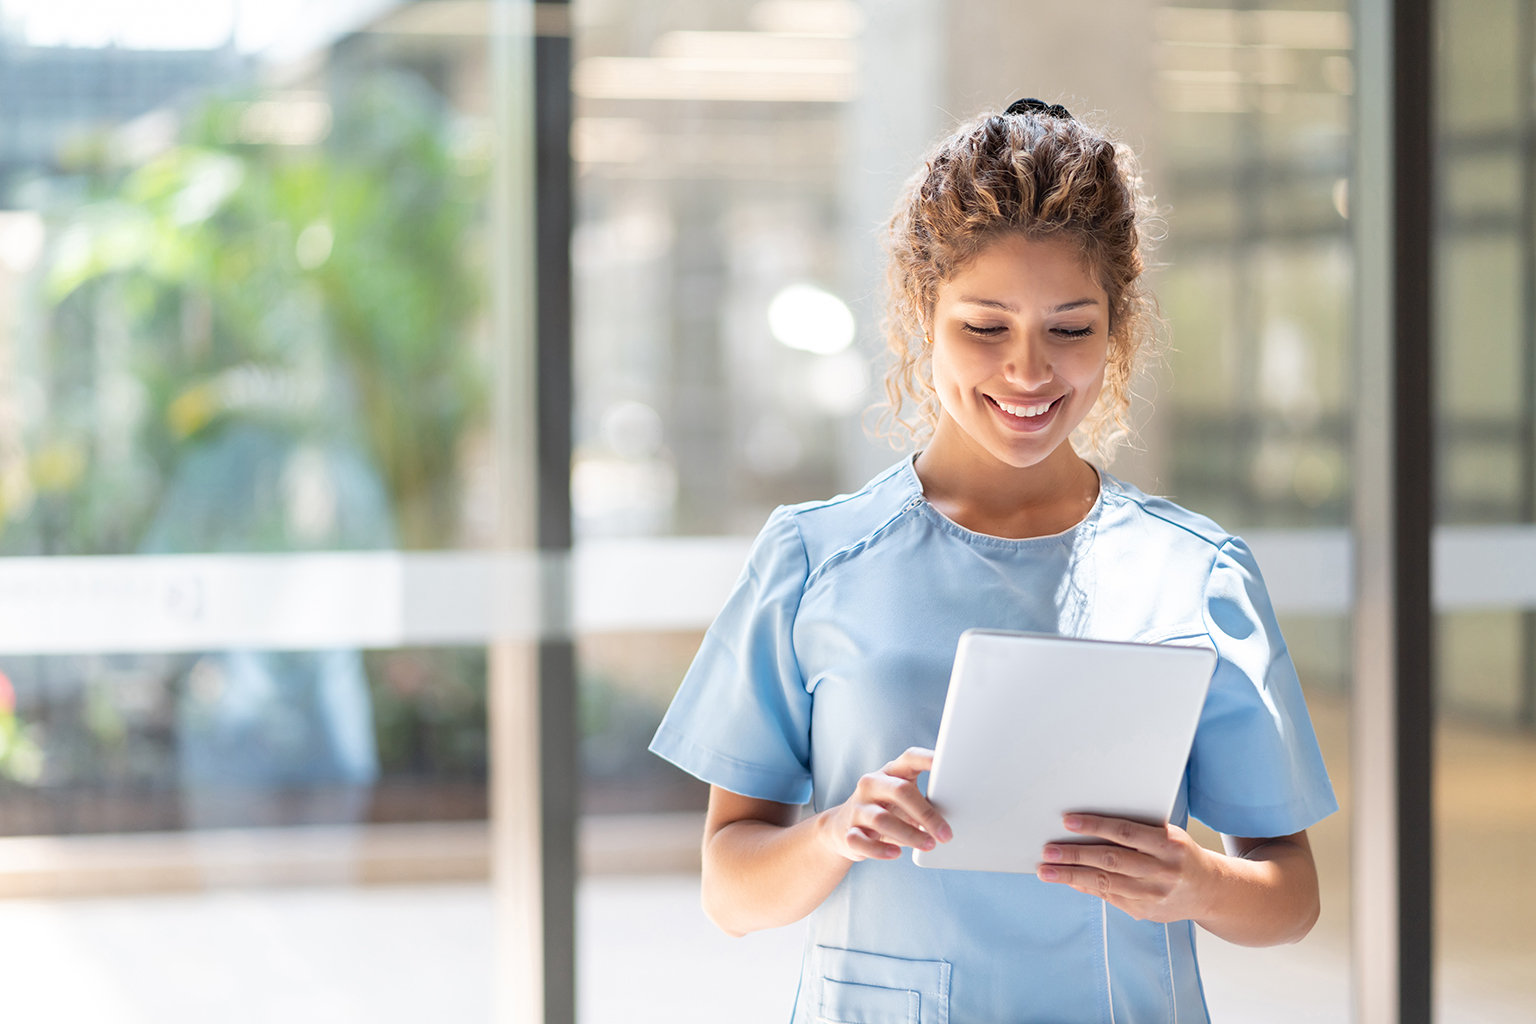 How prepared are new nurse graduates for practice today? Clinical judgment skills identified as a primary gap in practice readiness according to Wolters Kluwer report